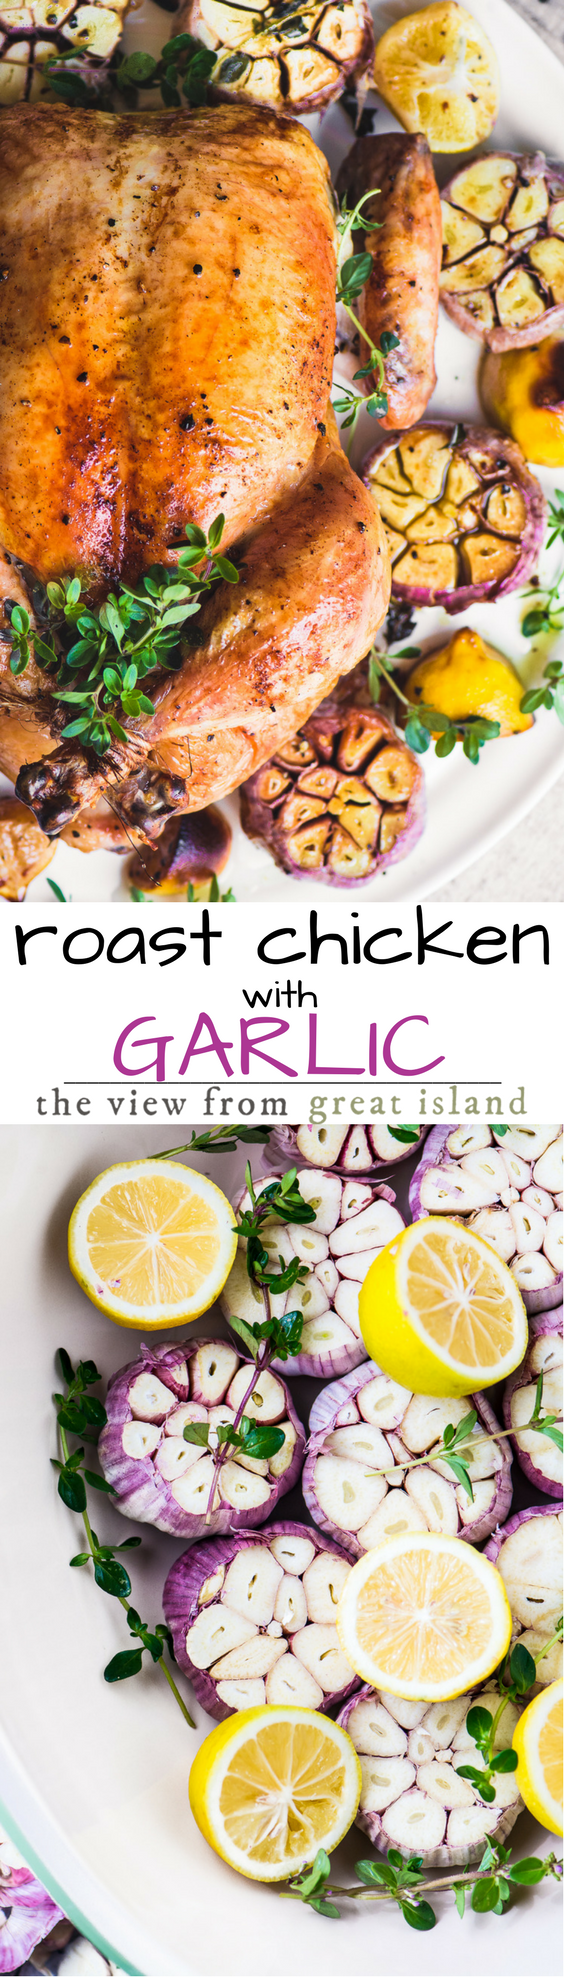 Roast Chicken with Purple Garlic ~ this chicken roasts on a veritable bower of garlic, and when it comes out of the oven, those cloves are mellow and spread like buttah.  #recipe #best #baked #homemade #garlic #dinner #whole #healthy #easy #crispy #perfect #chicken